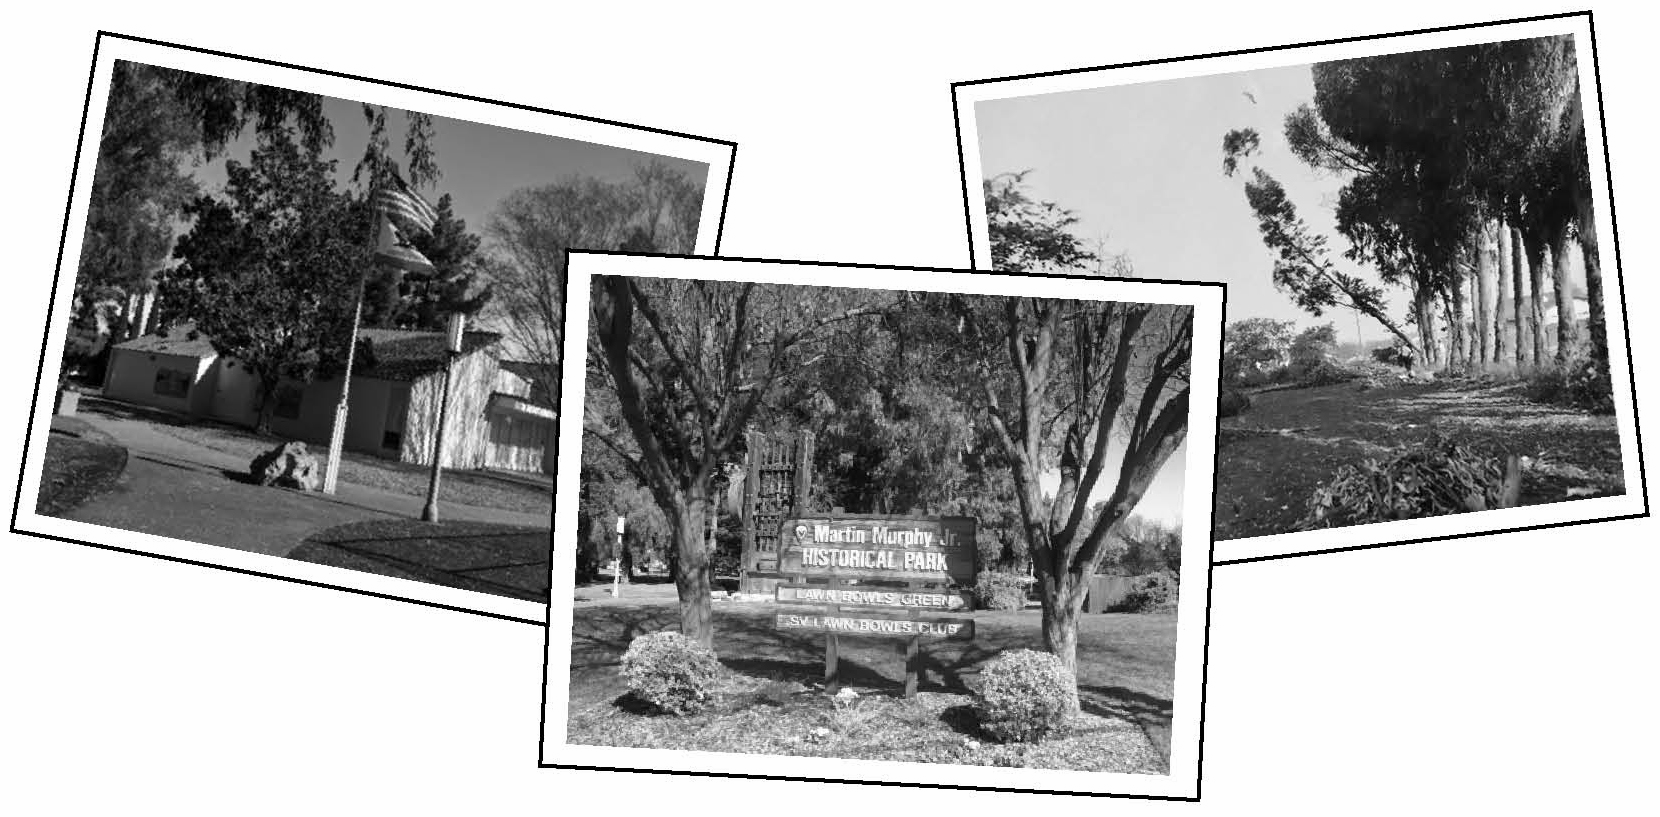 3 photos of the land and buildings on Murphy Park, Sunnyvale